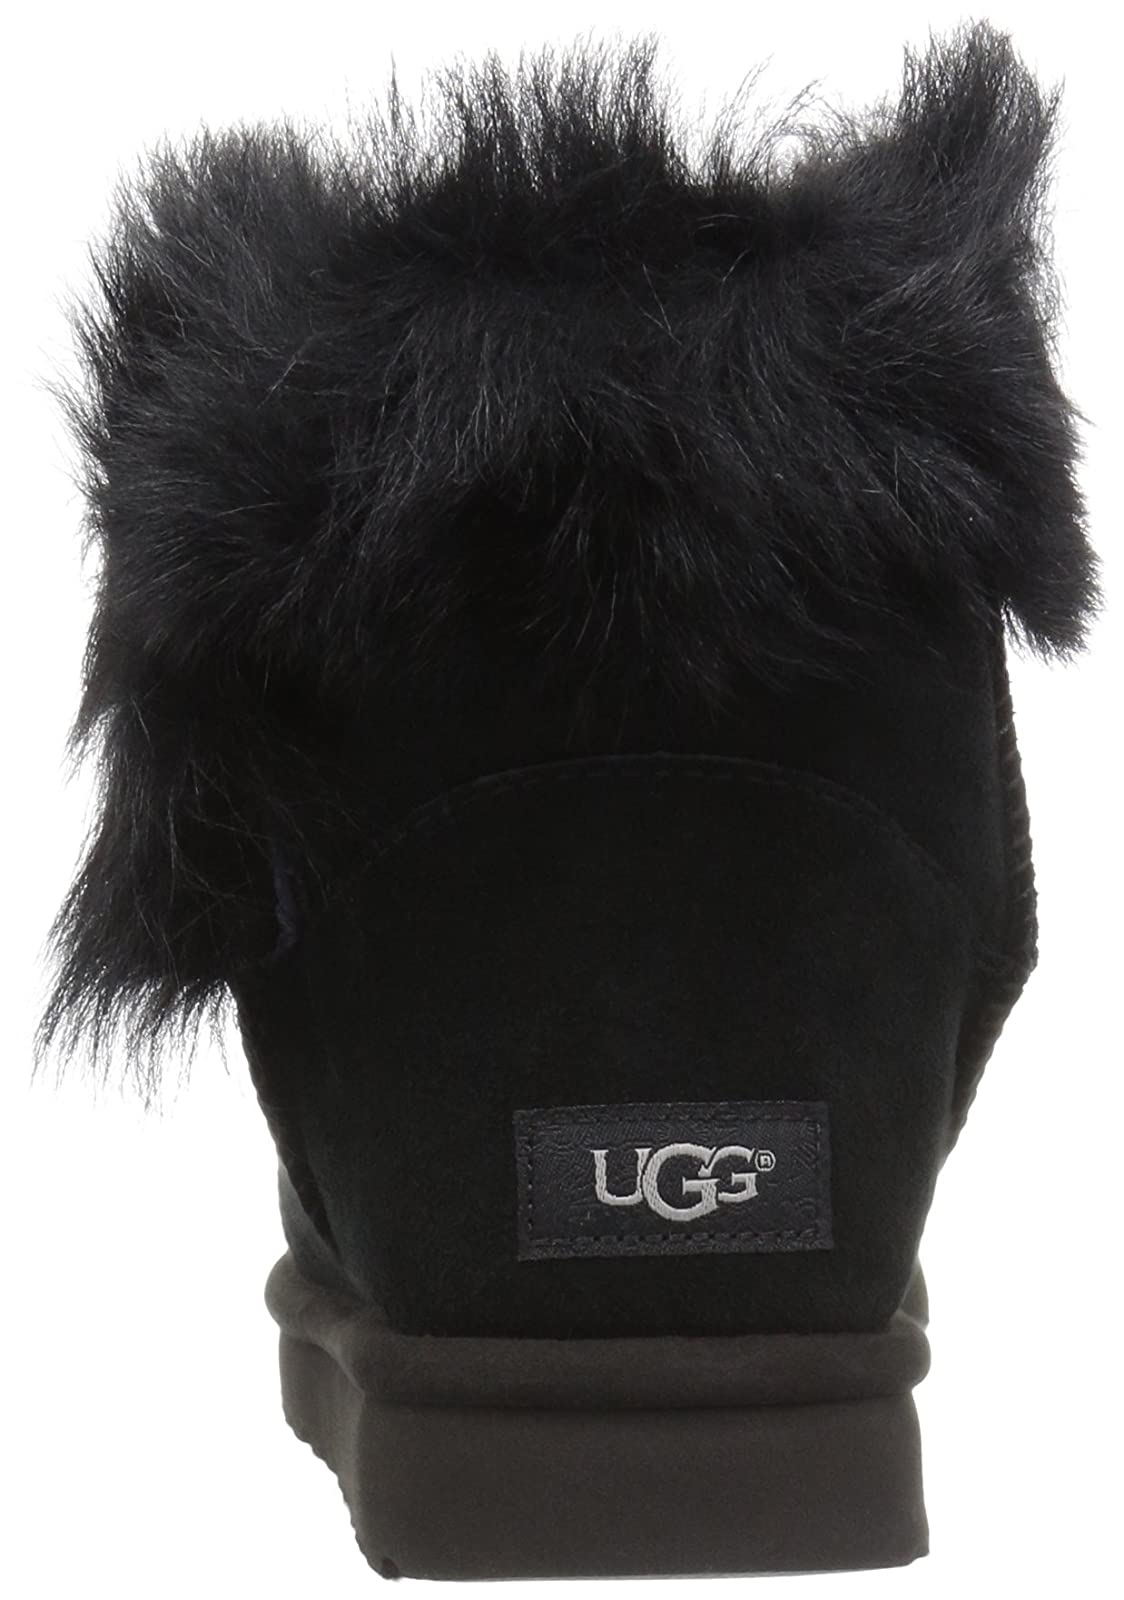 UGG Women's Milla Boot 9T US Toddler - 2